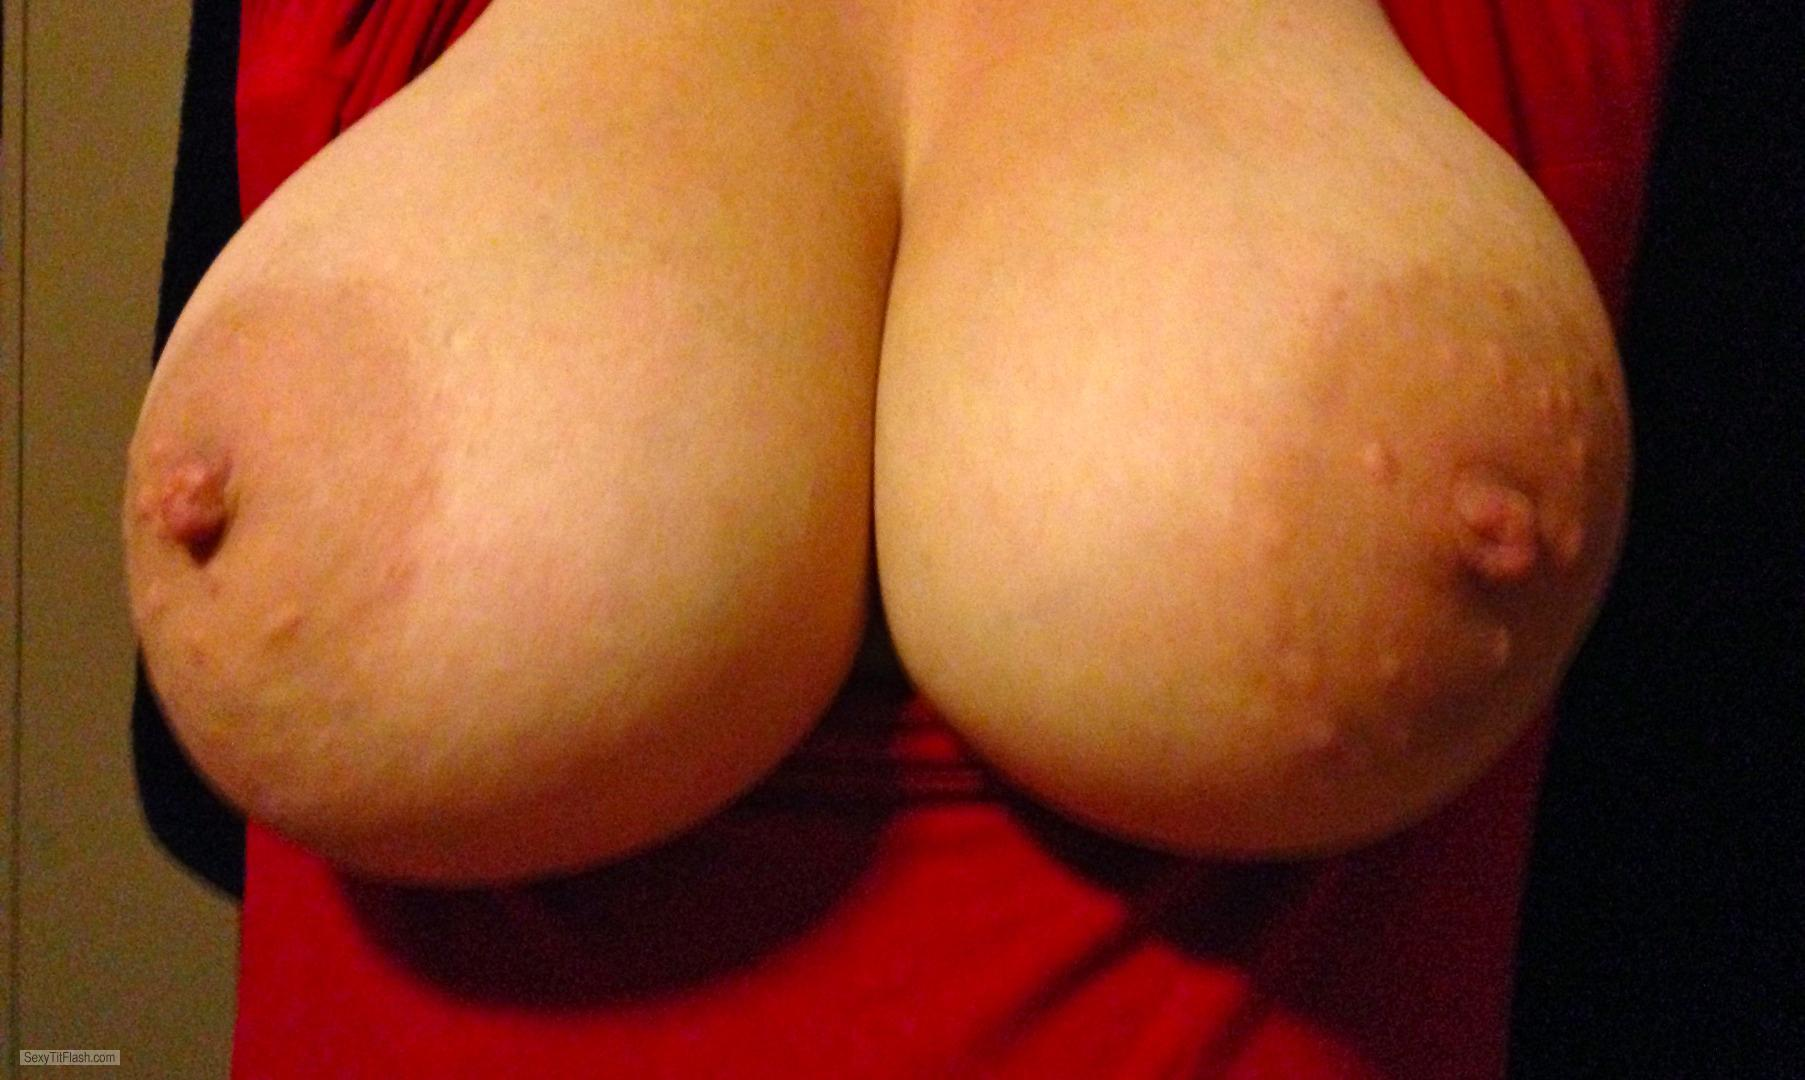 Tit Flash: My Very Big Tits - Thicknbusty from United States